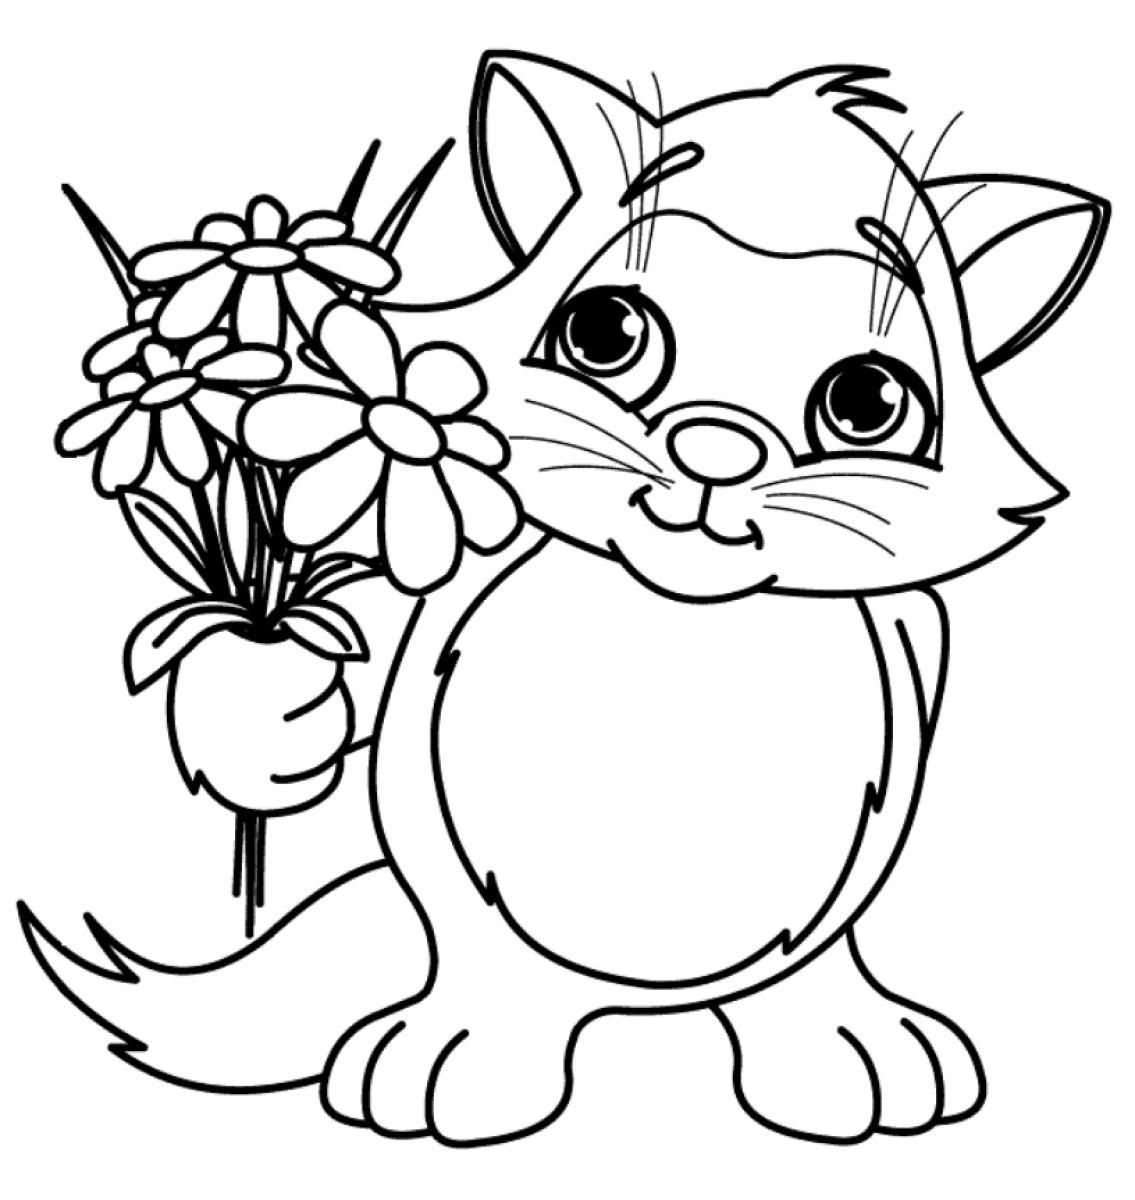 Hydrangea flower coloring pages - Spring Flower Coloring Pages To Download And Print For Free